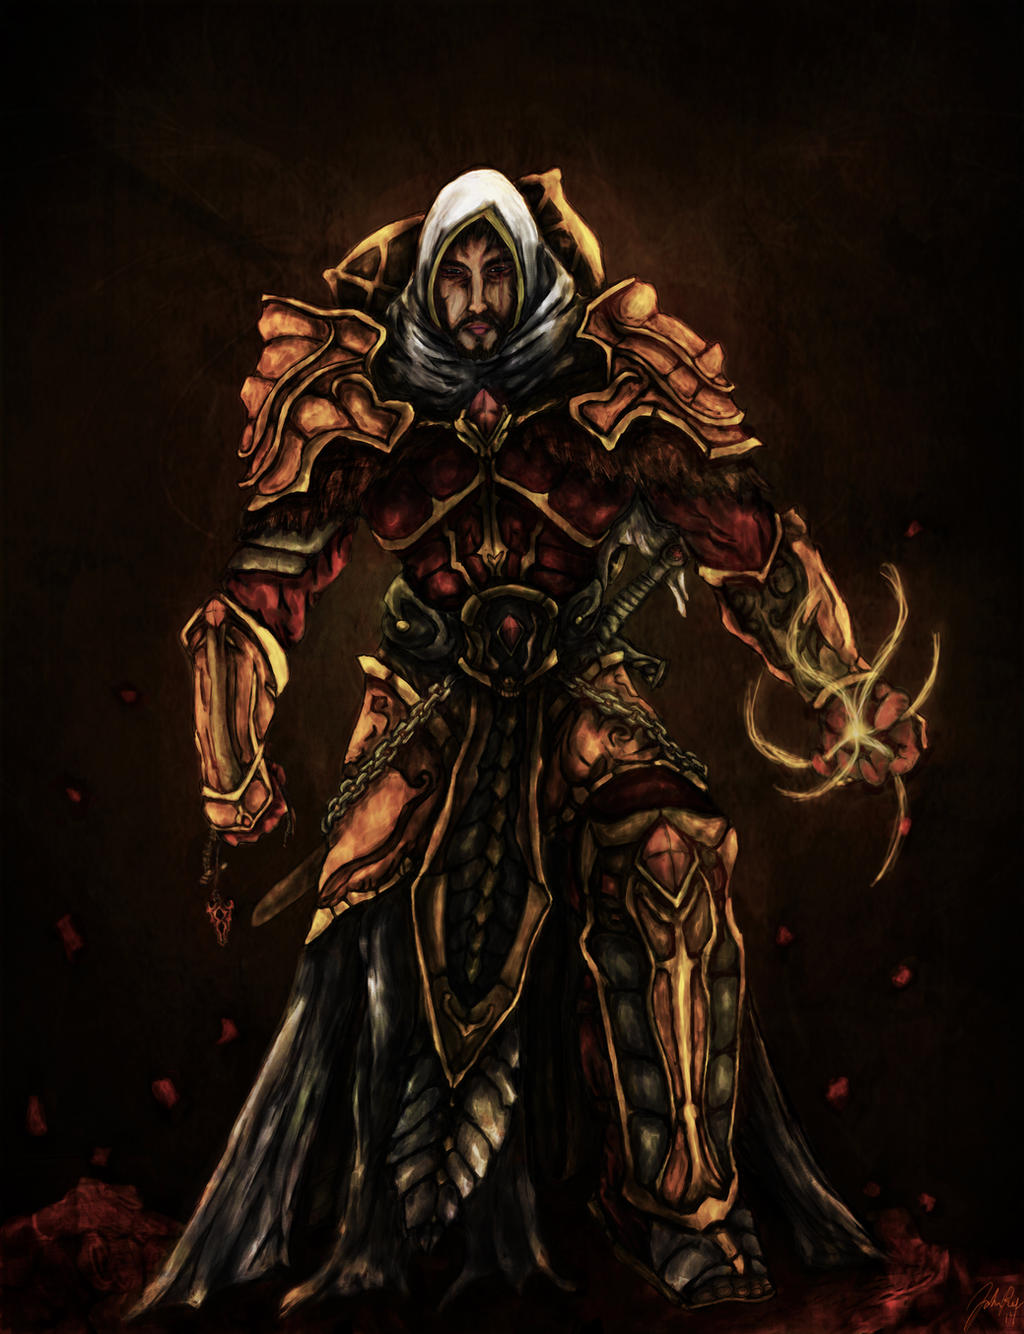 Teso Fan Art An Elder Scrolls Online Community And Forum